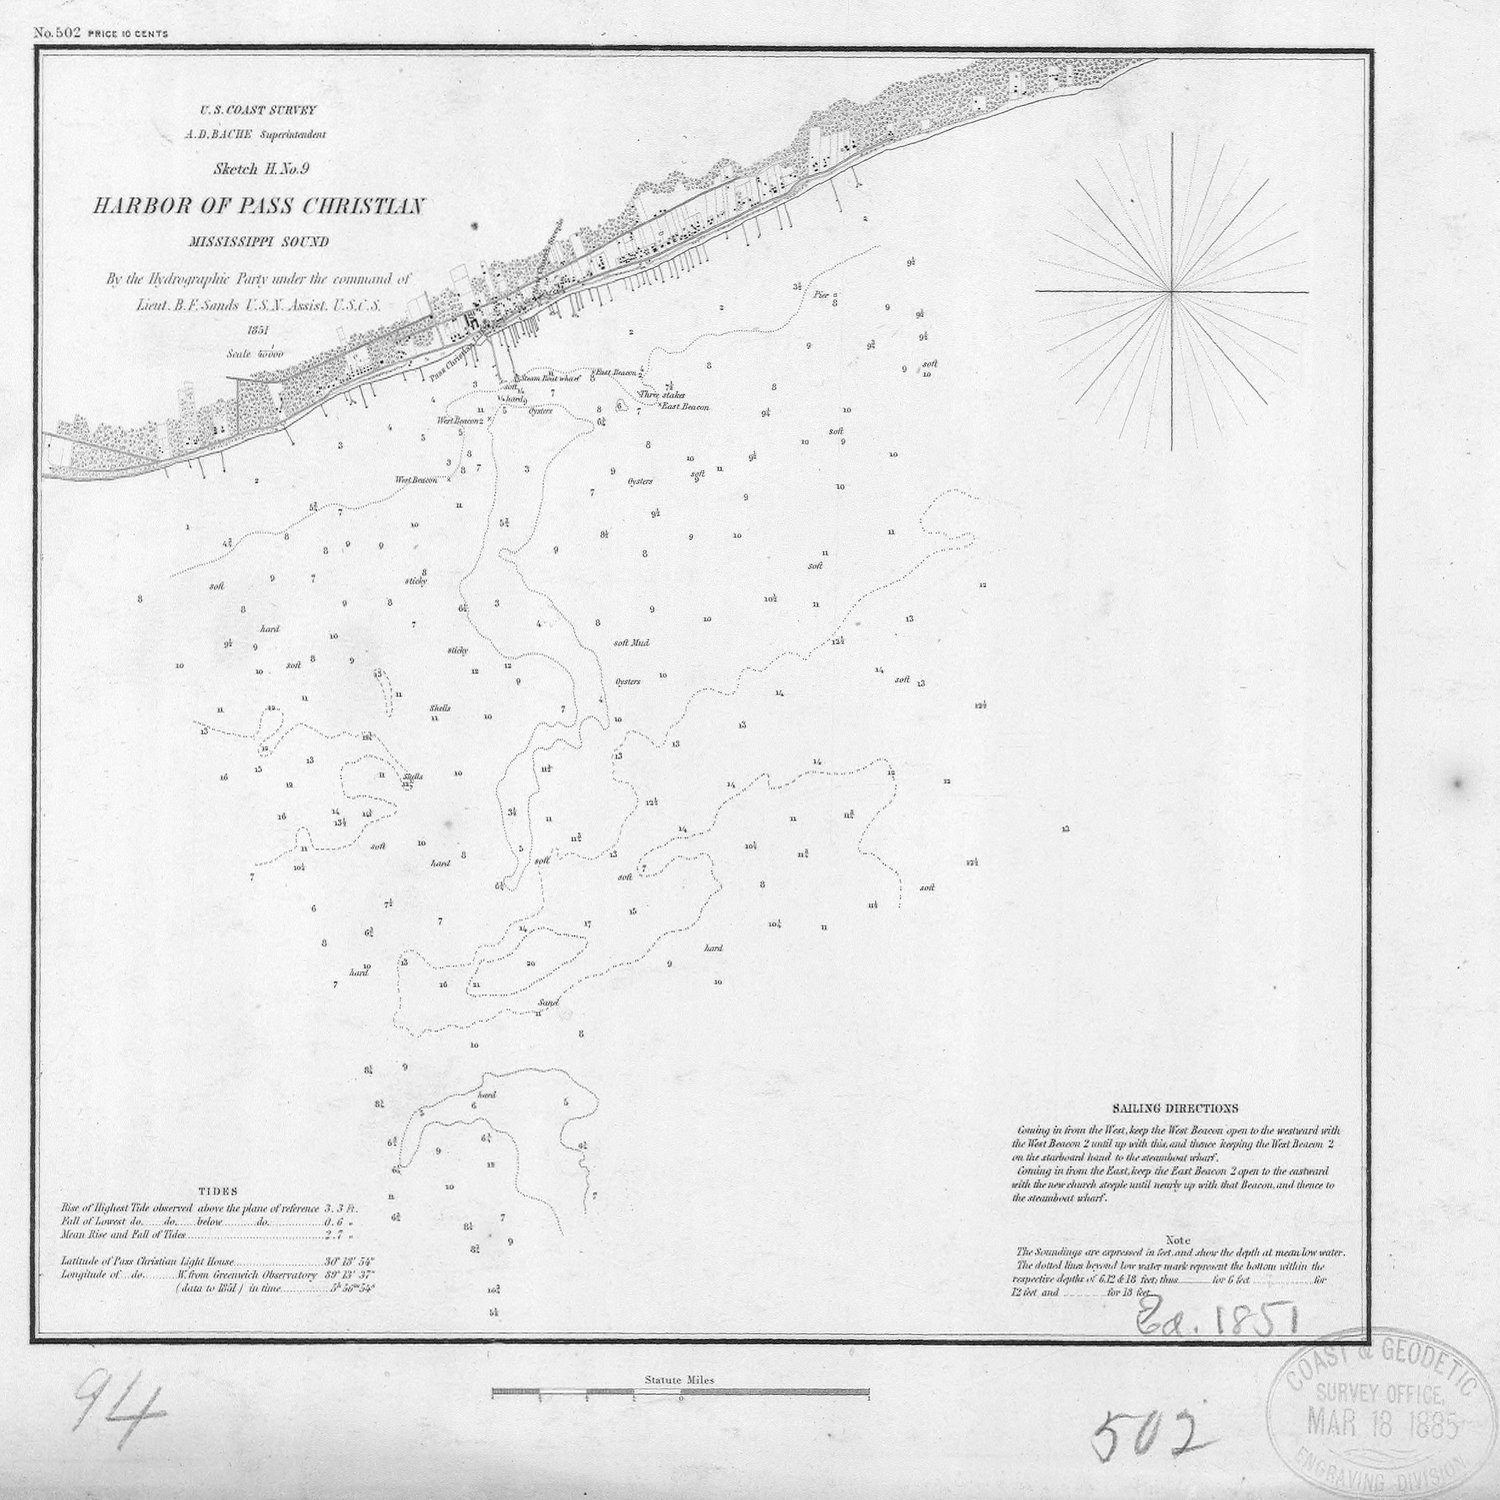 16 x 20 Glossy Nautical Map Printed on Metal HARBOR OF PASS CHRISTIAN MISSISSIPPI SOUND 1851 NOAA 46a